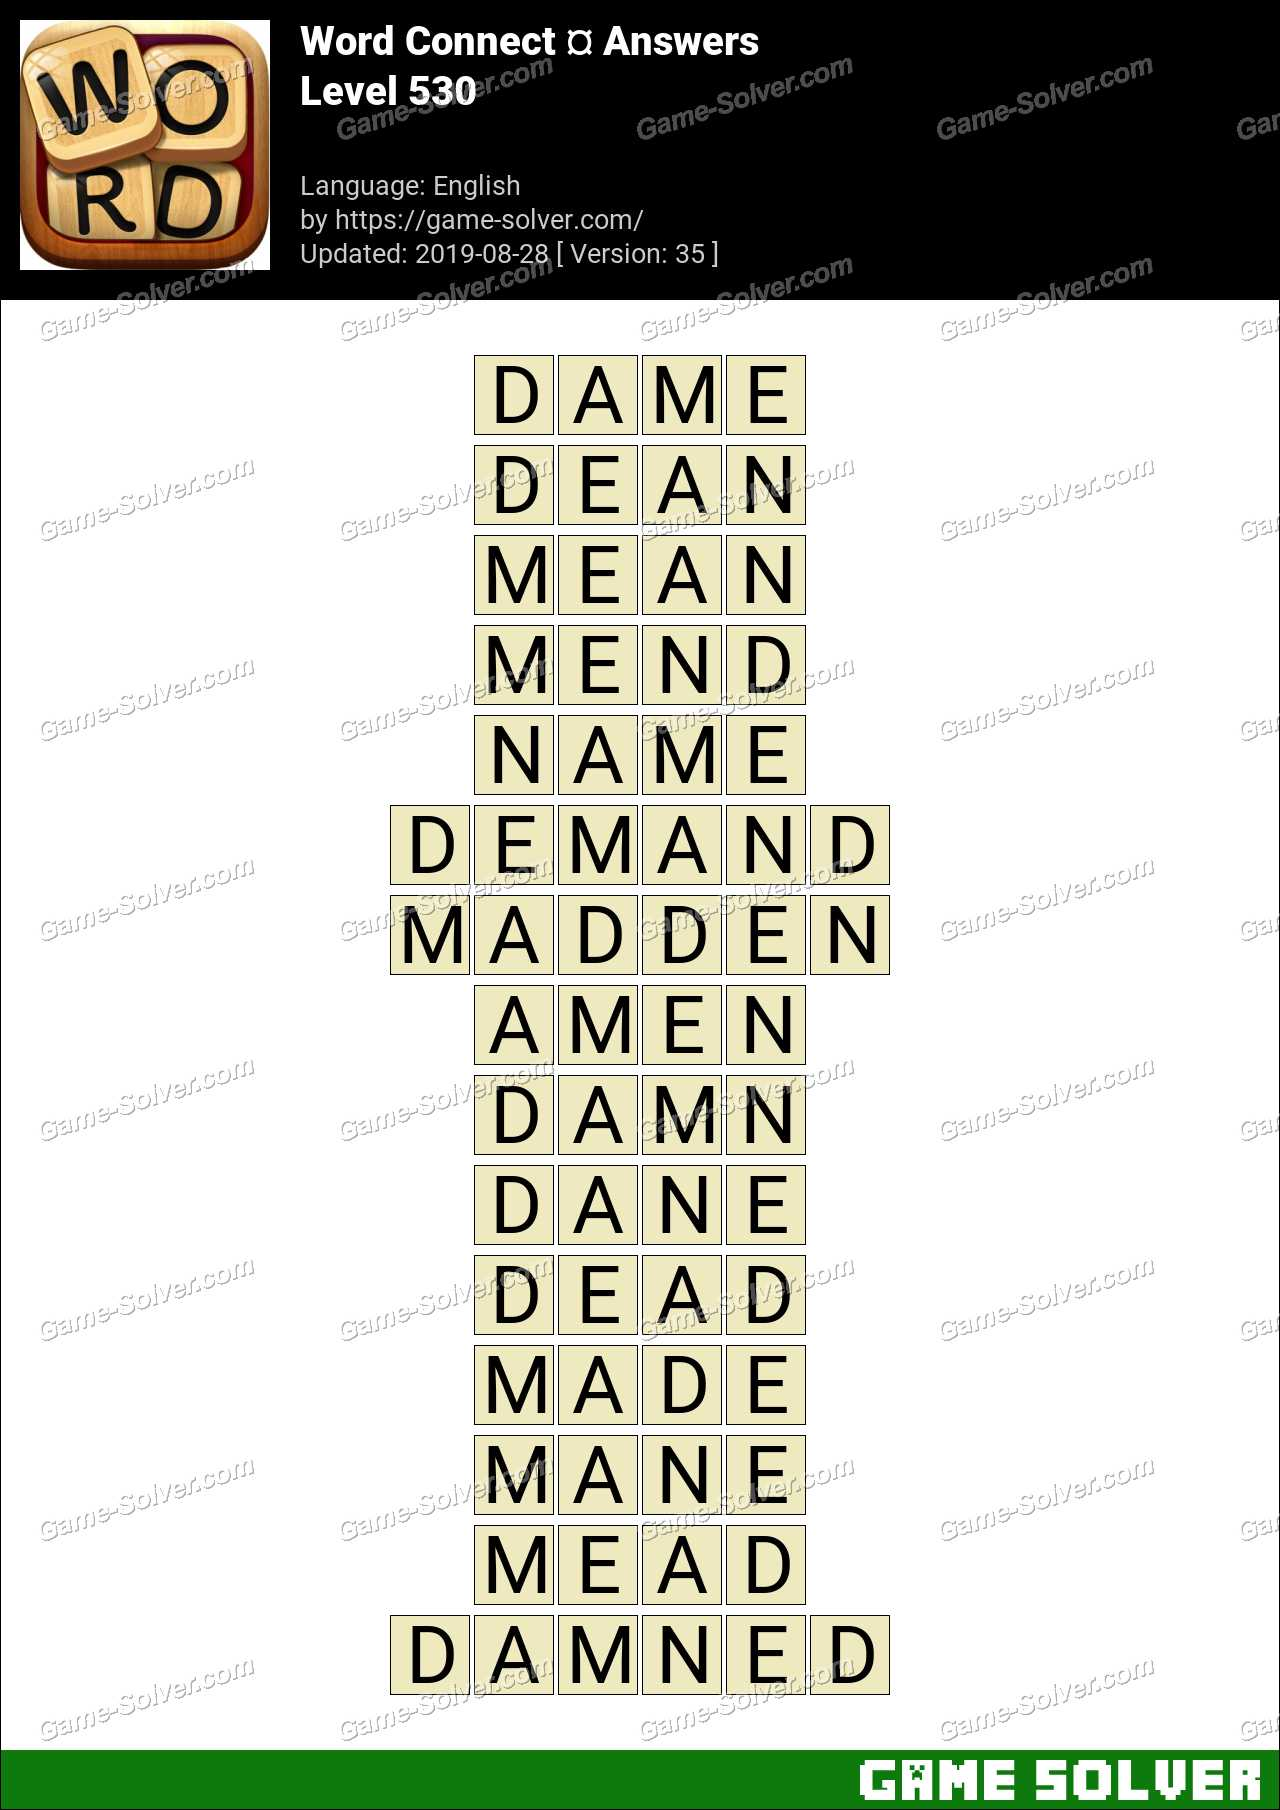 Word Connect Level 530 Answers